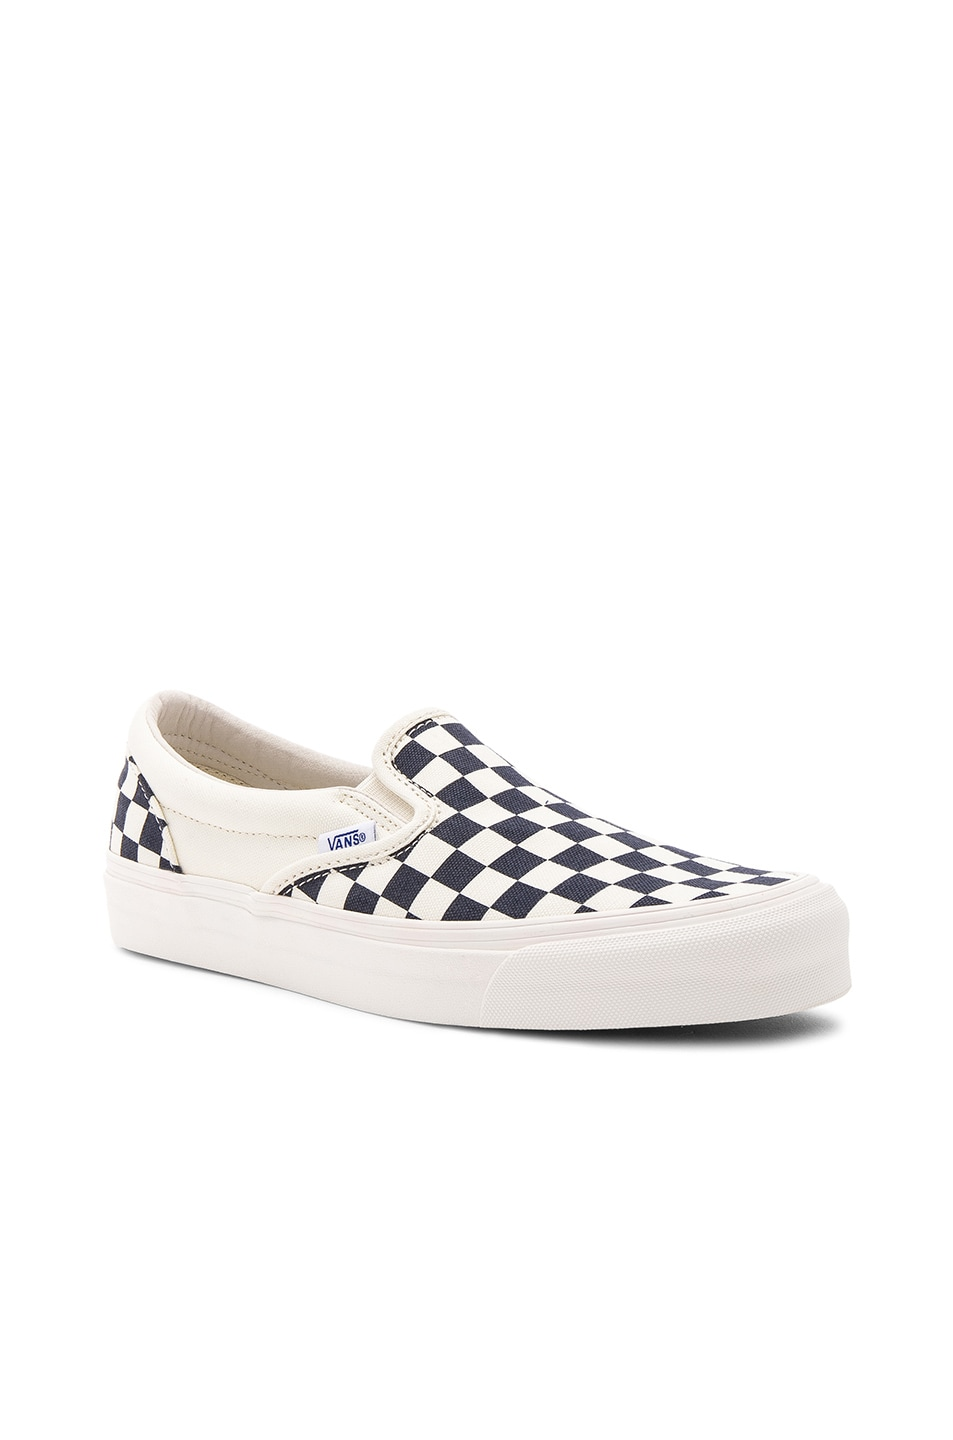 vans vault og classic slip on lx white navy & og checkerboard